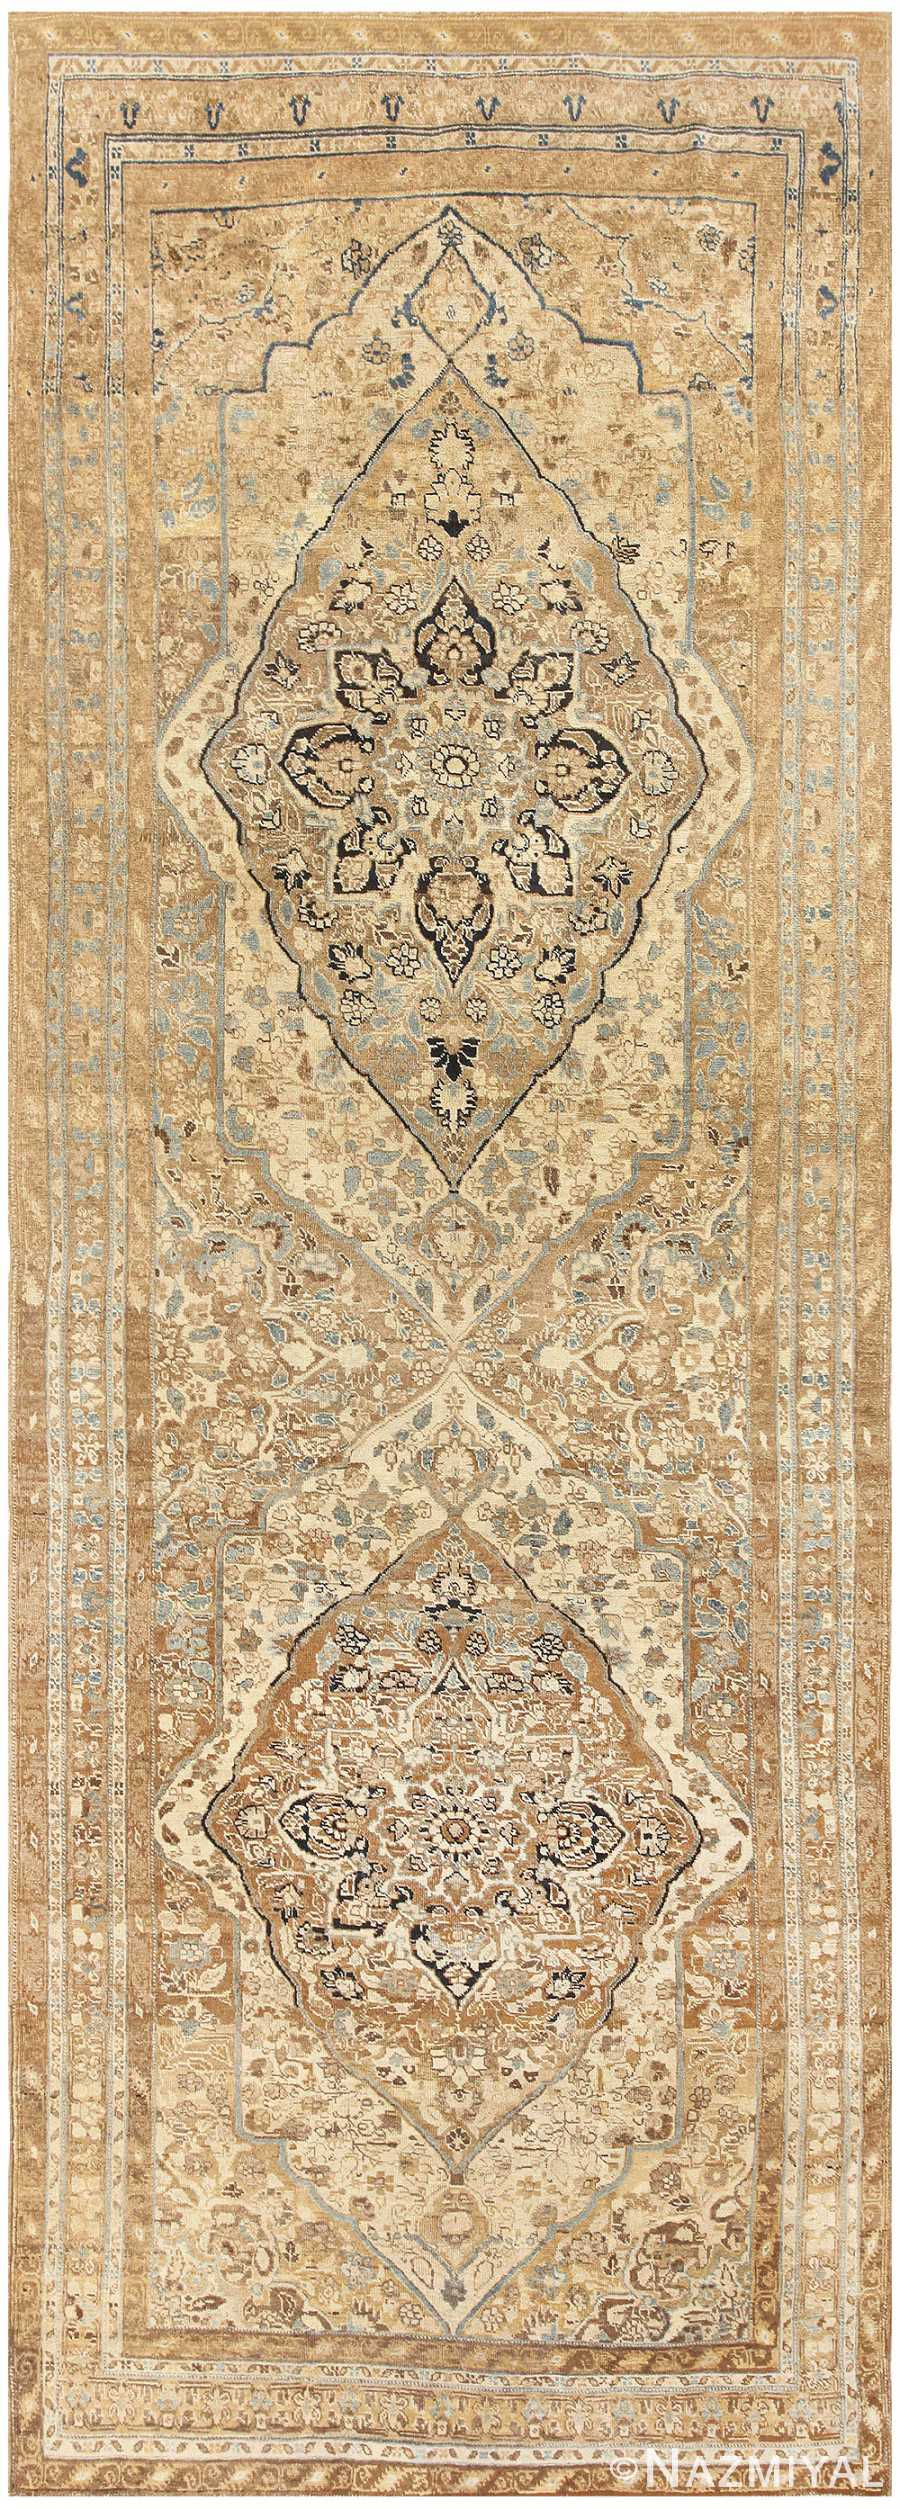 Long Antique Persian Tabriz Runner Rug 47398 By Nazmiyal